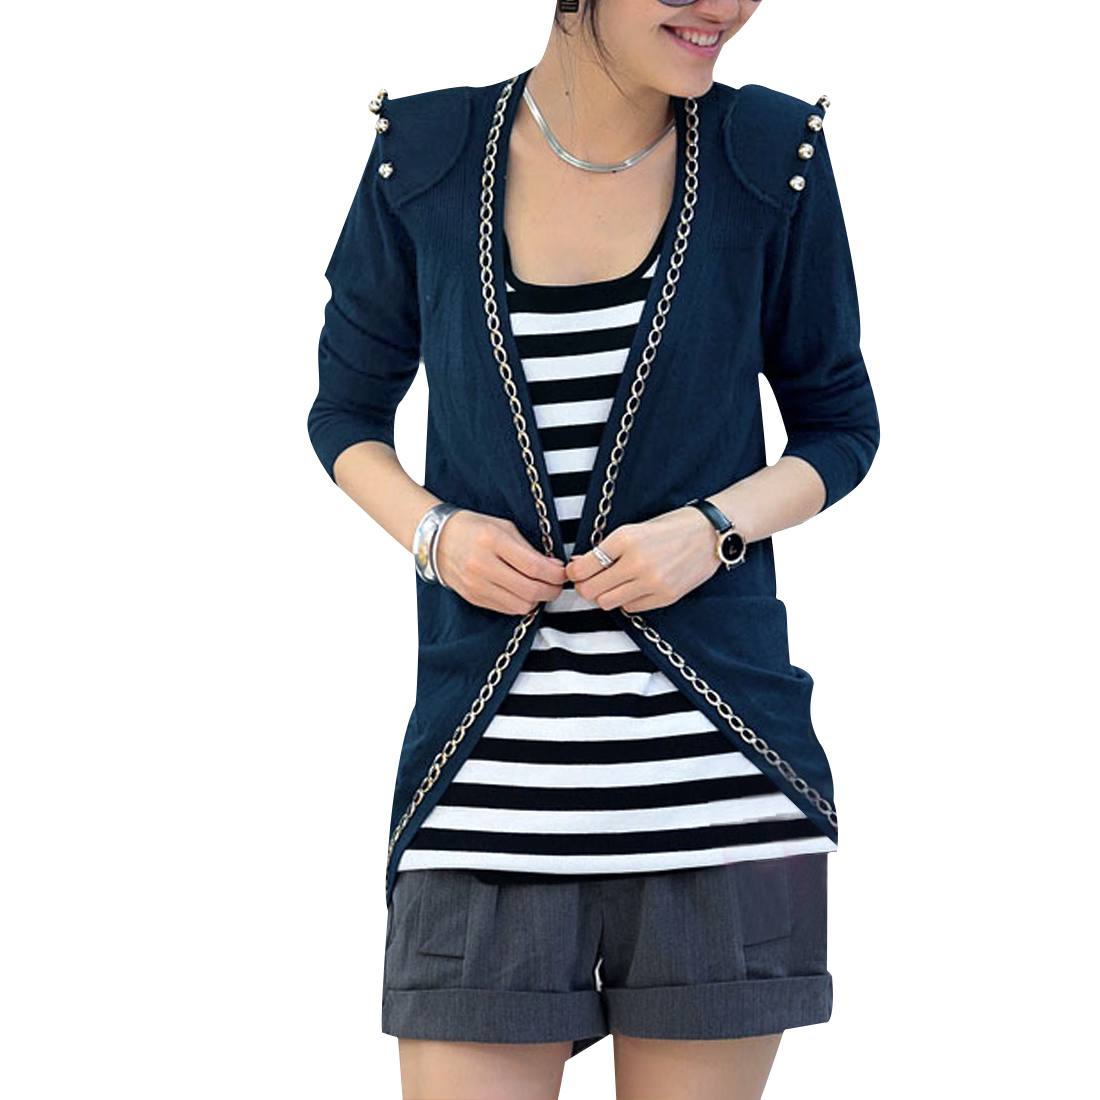 Lady Steel Blue Front Opening Long Sleeve Chain Decor Padded Shoulder Blazer XS